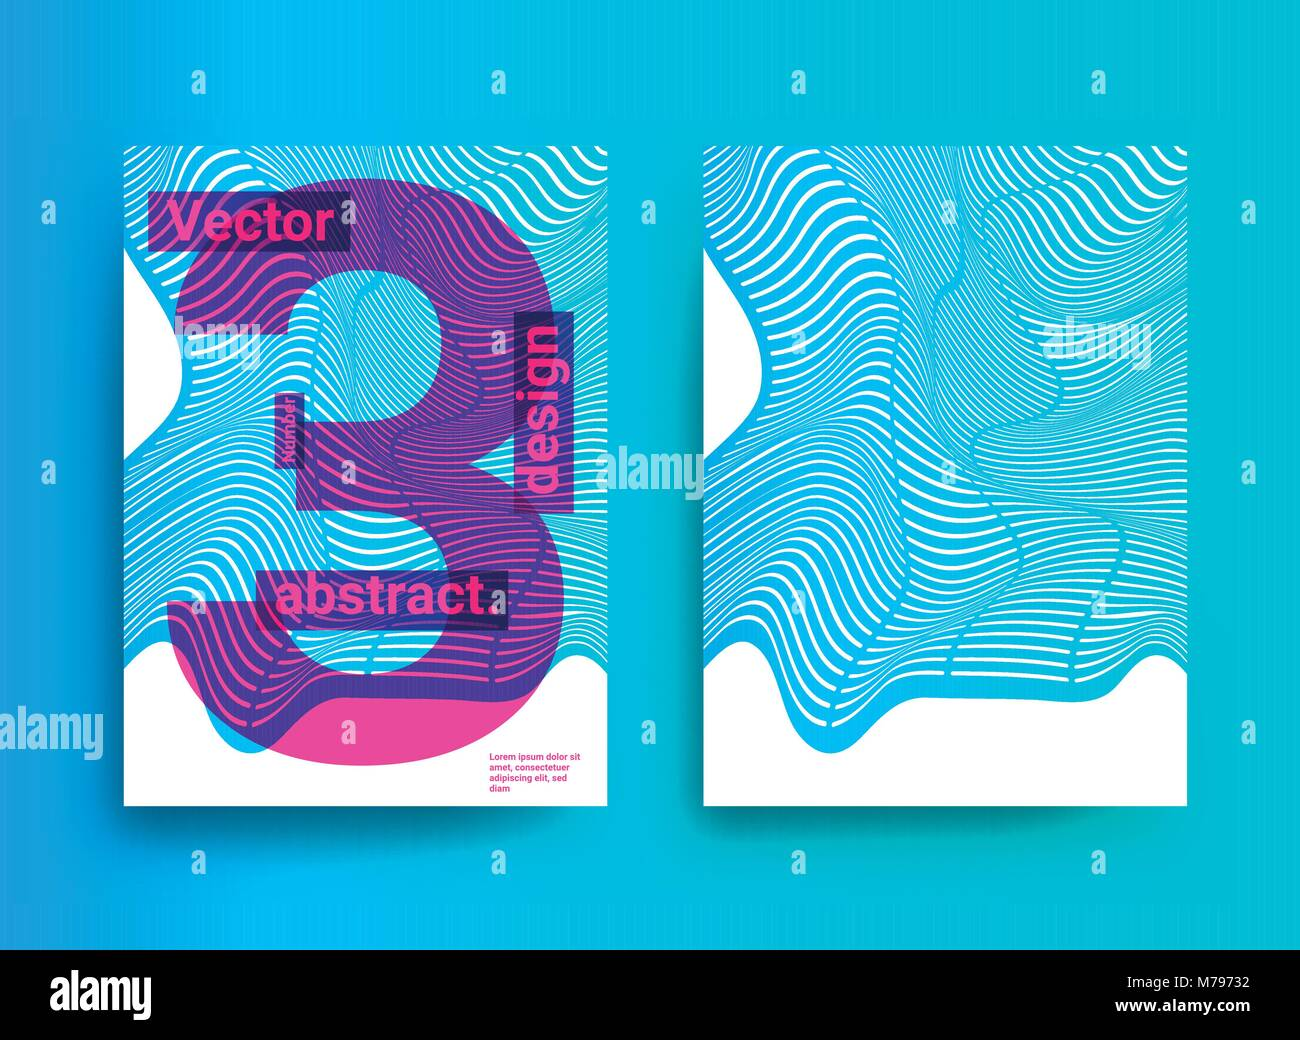 Trendy Poster Designs: Templates Designs With Abstract Background And Trendy